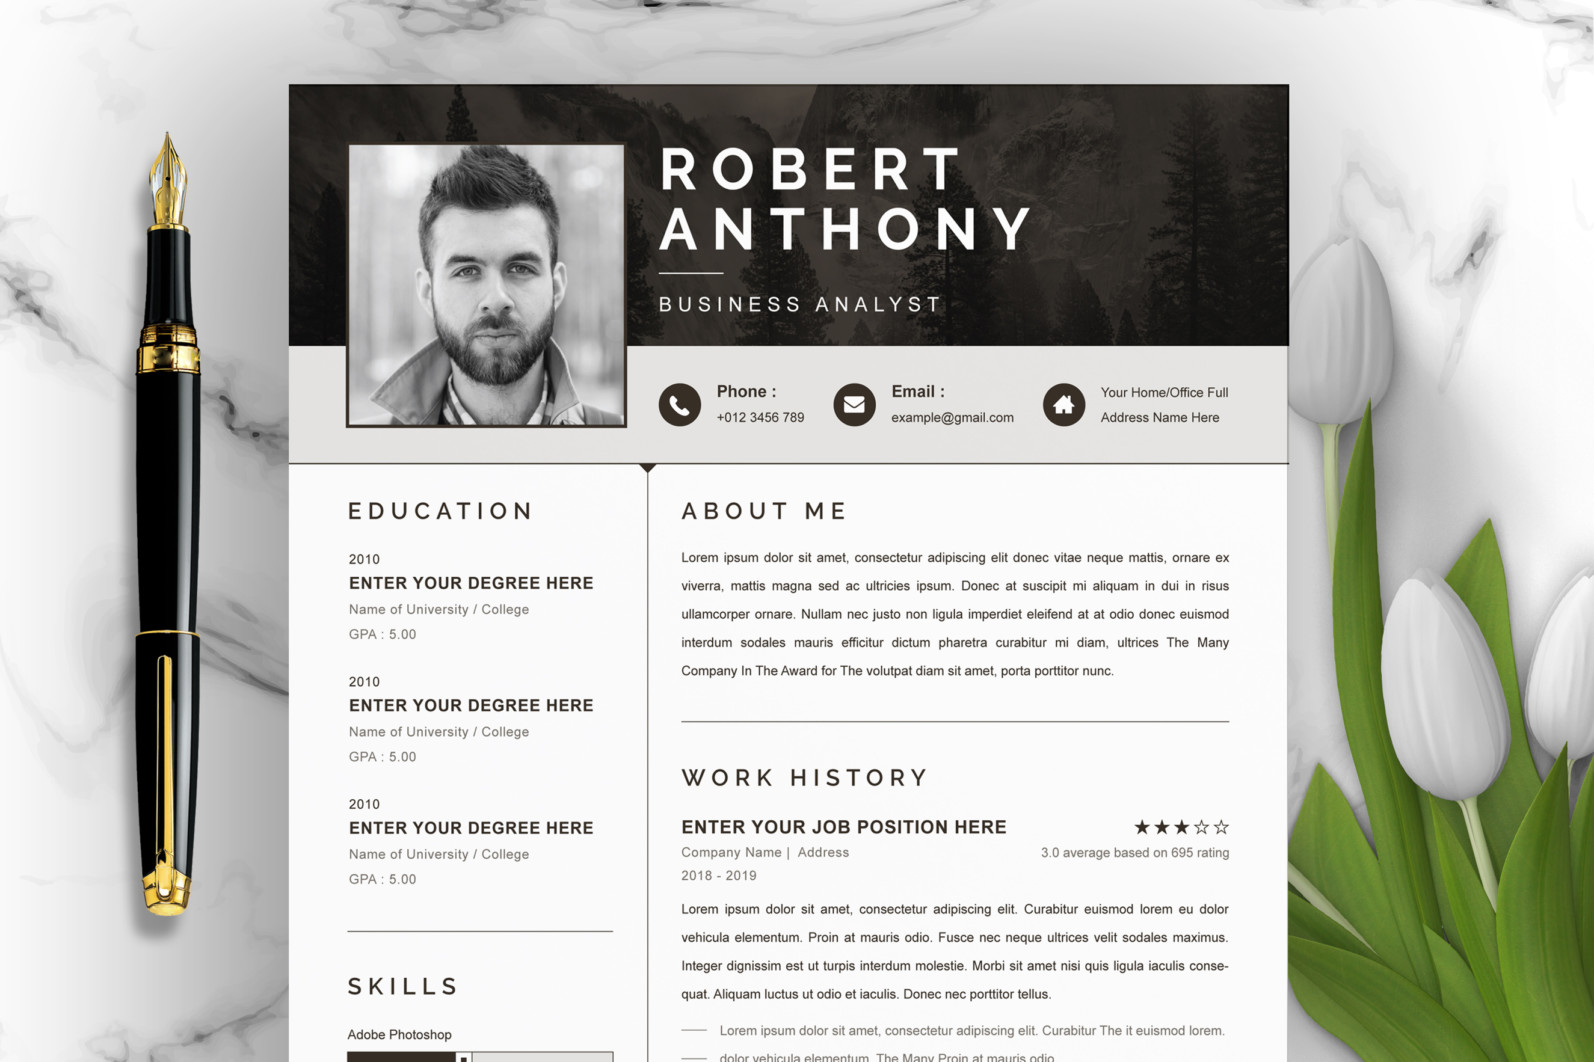 Professional Resume, Instant Download - Main Photo 8 scaled -